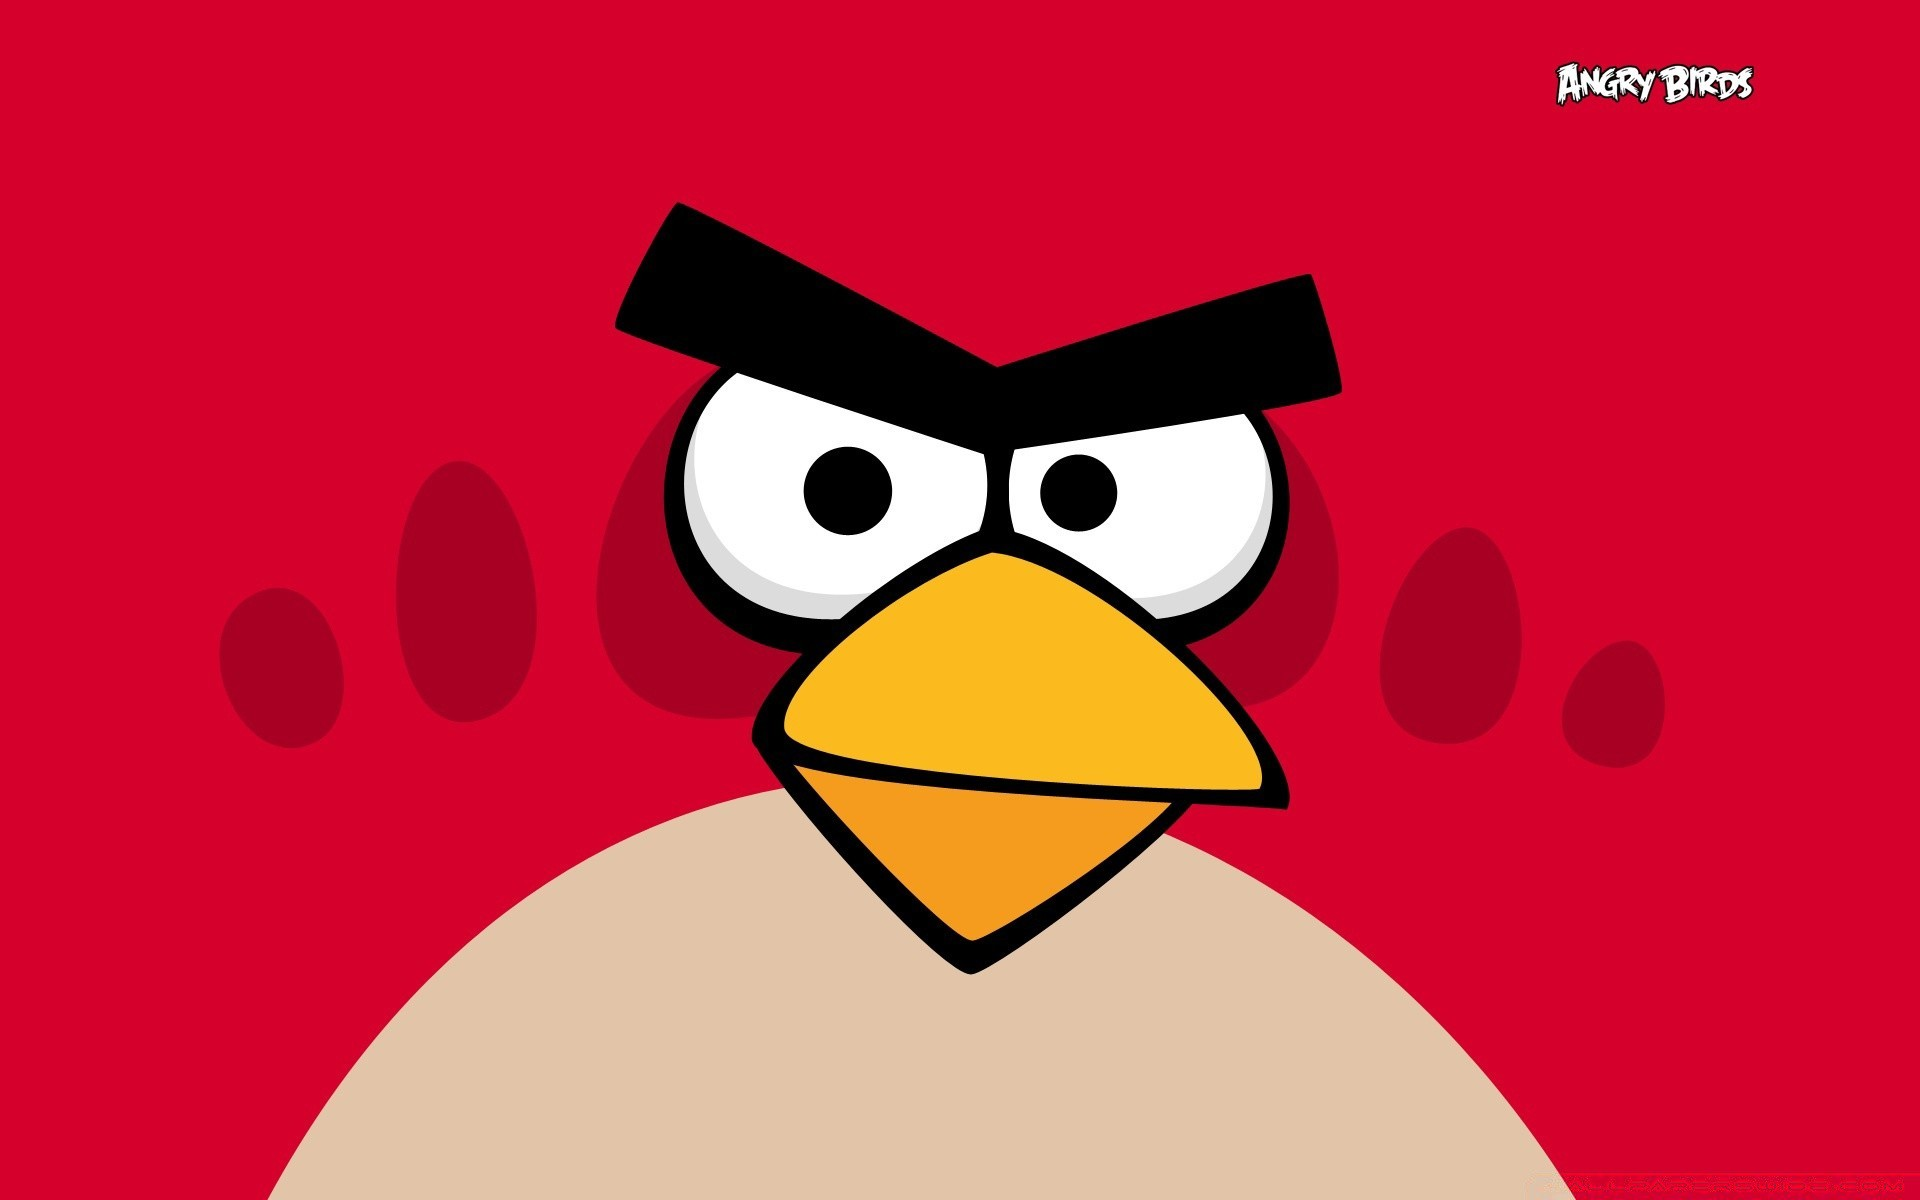 Angry Birds Red Bird Android Wallpapers For Free